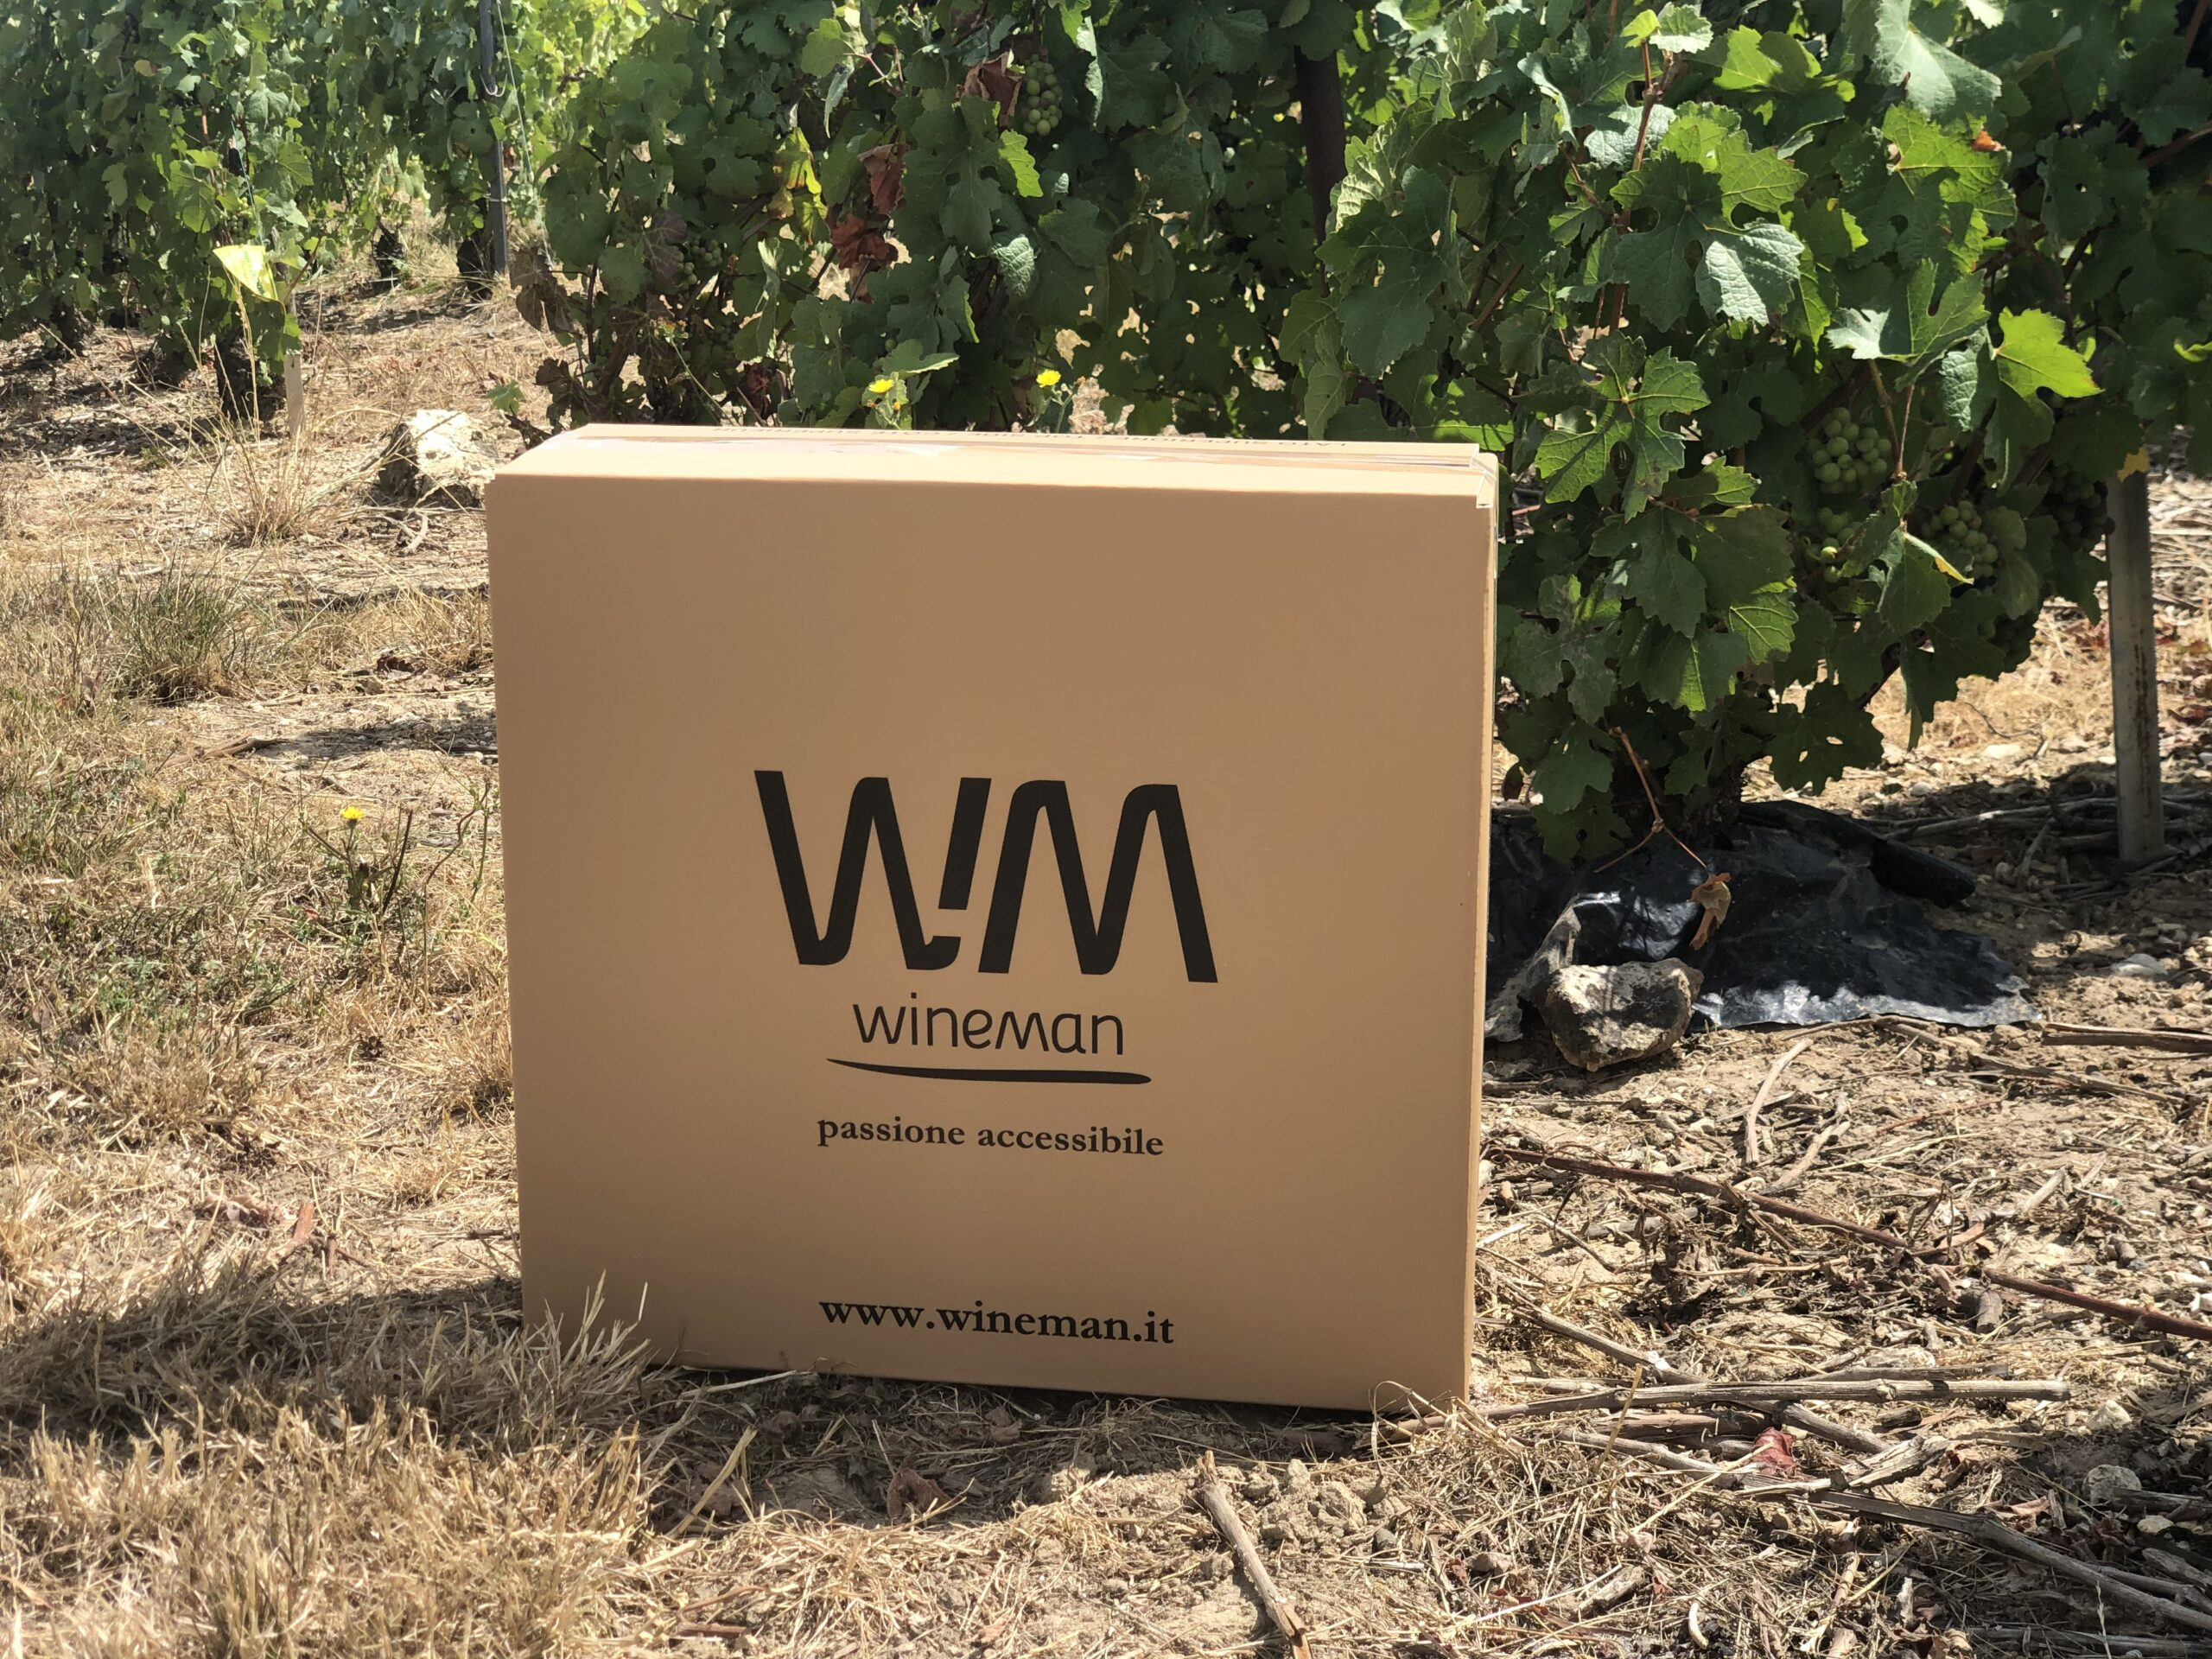 wineman box